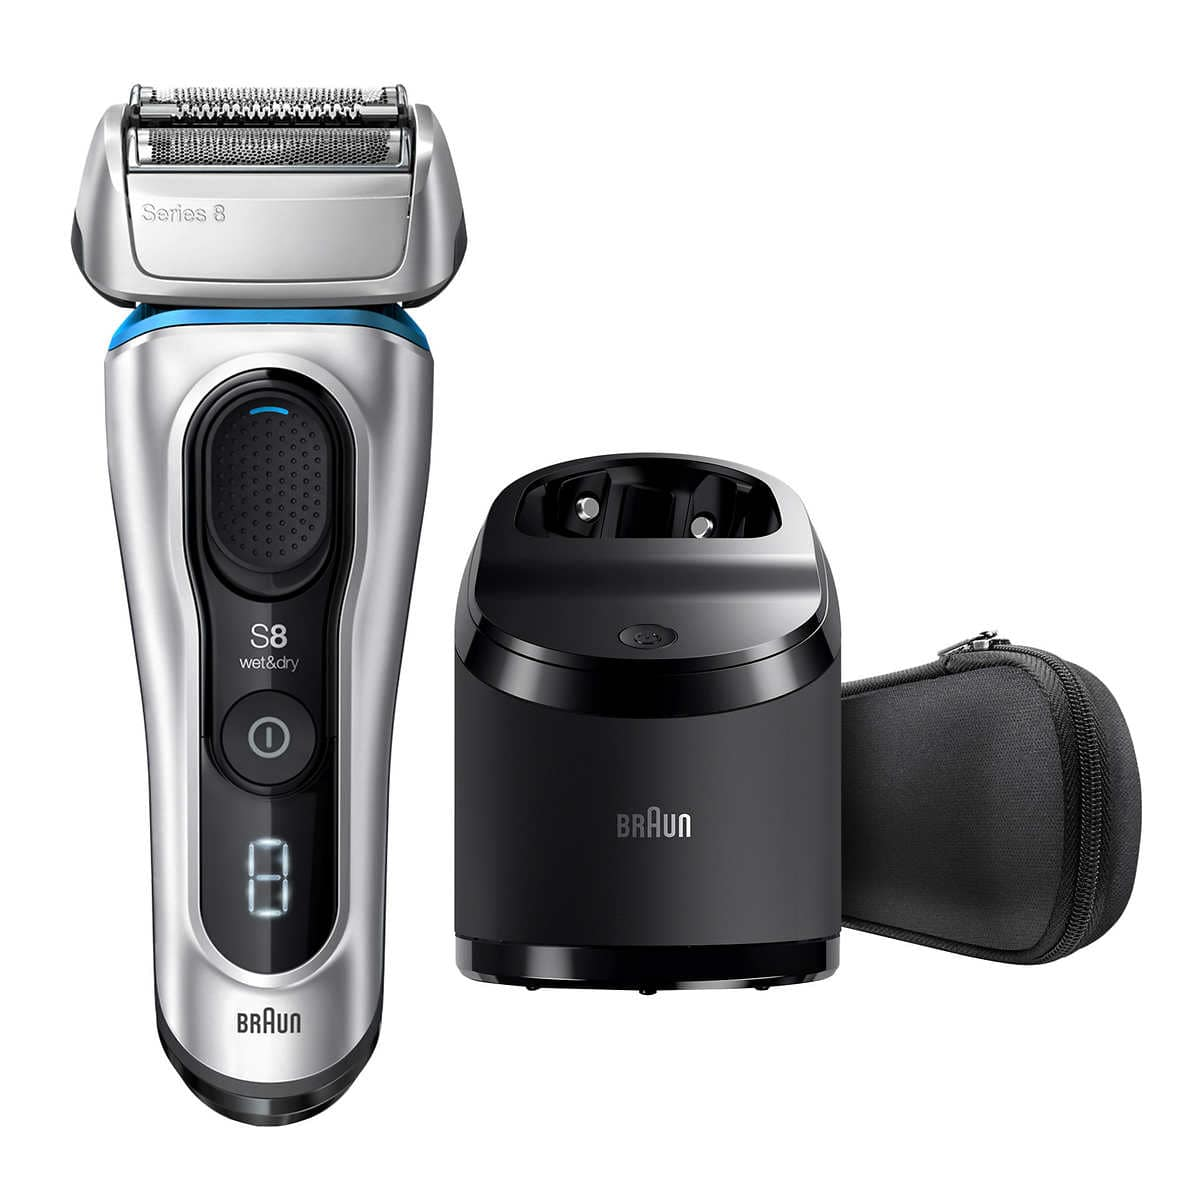 Braun Series 8 Electric Shaver $99.99 [local warehouse ymmv], $109.99 [online]